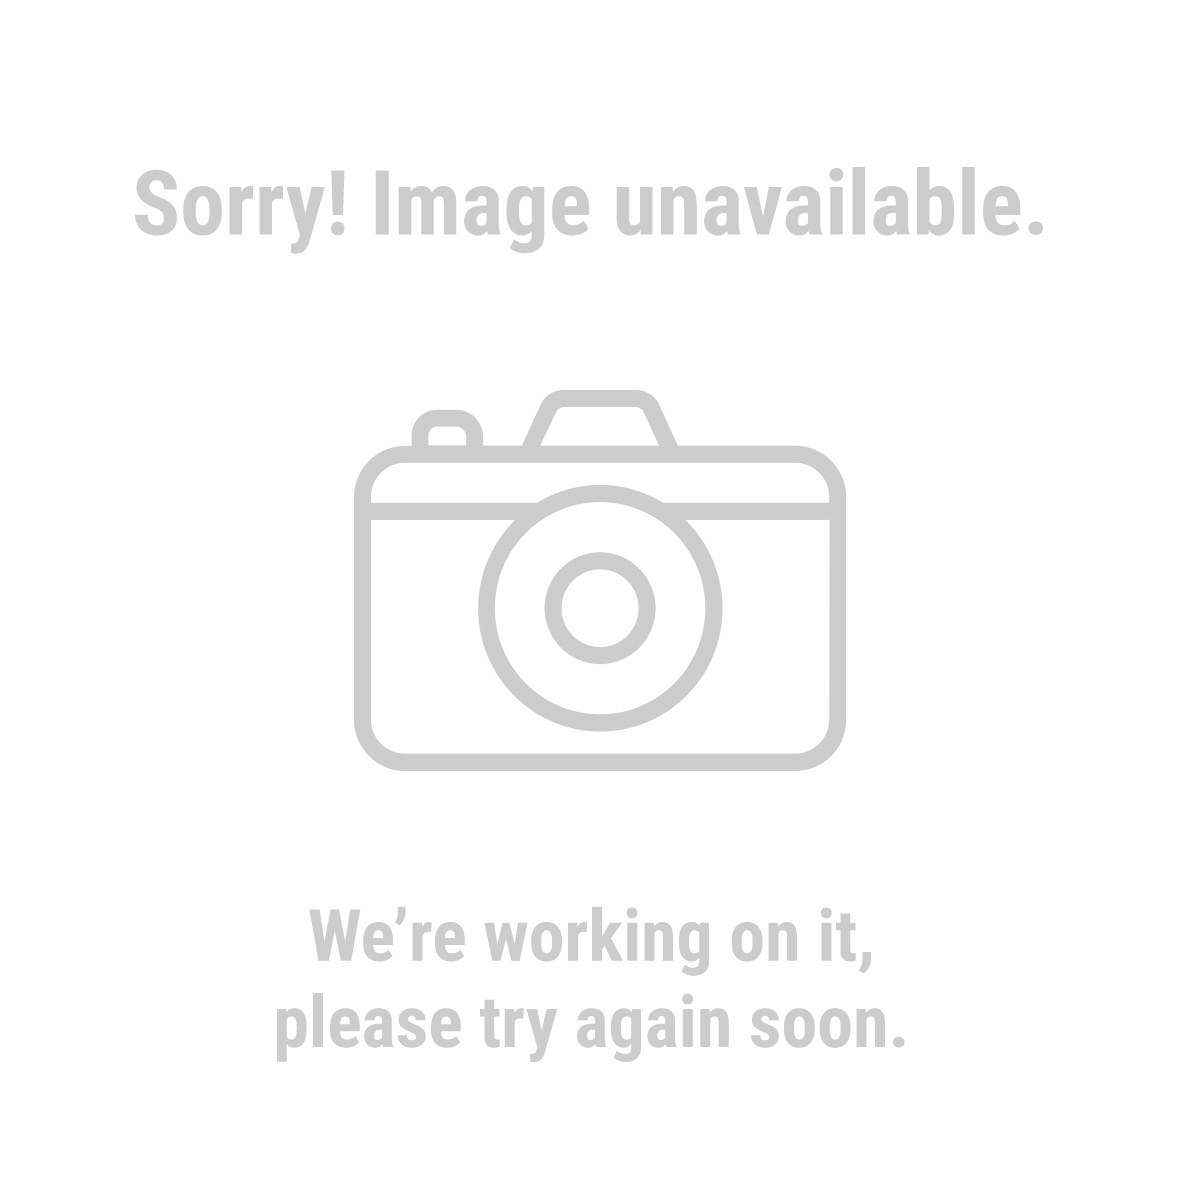 Voyager 3721 4 Piece Nesting Toolbox Set